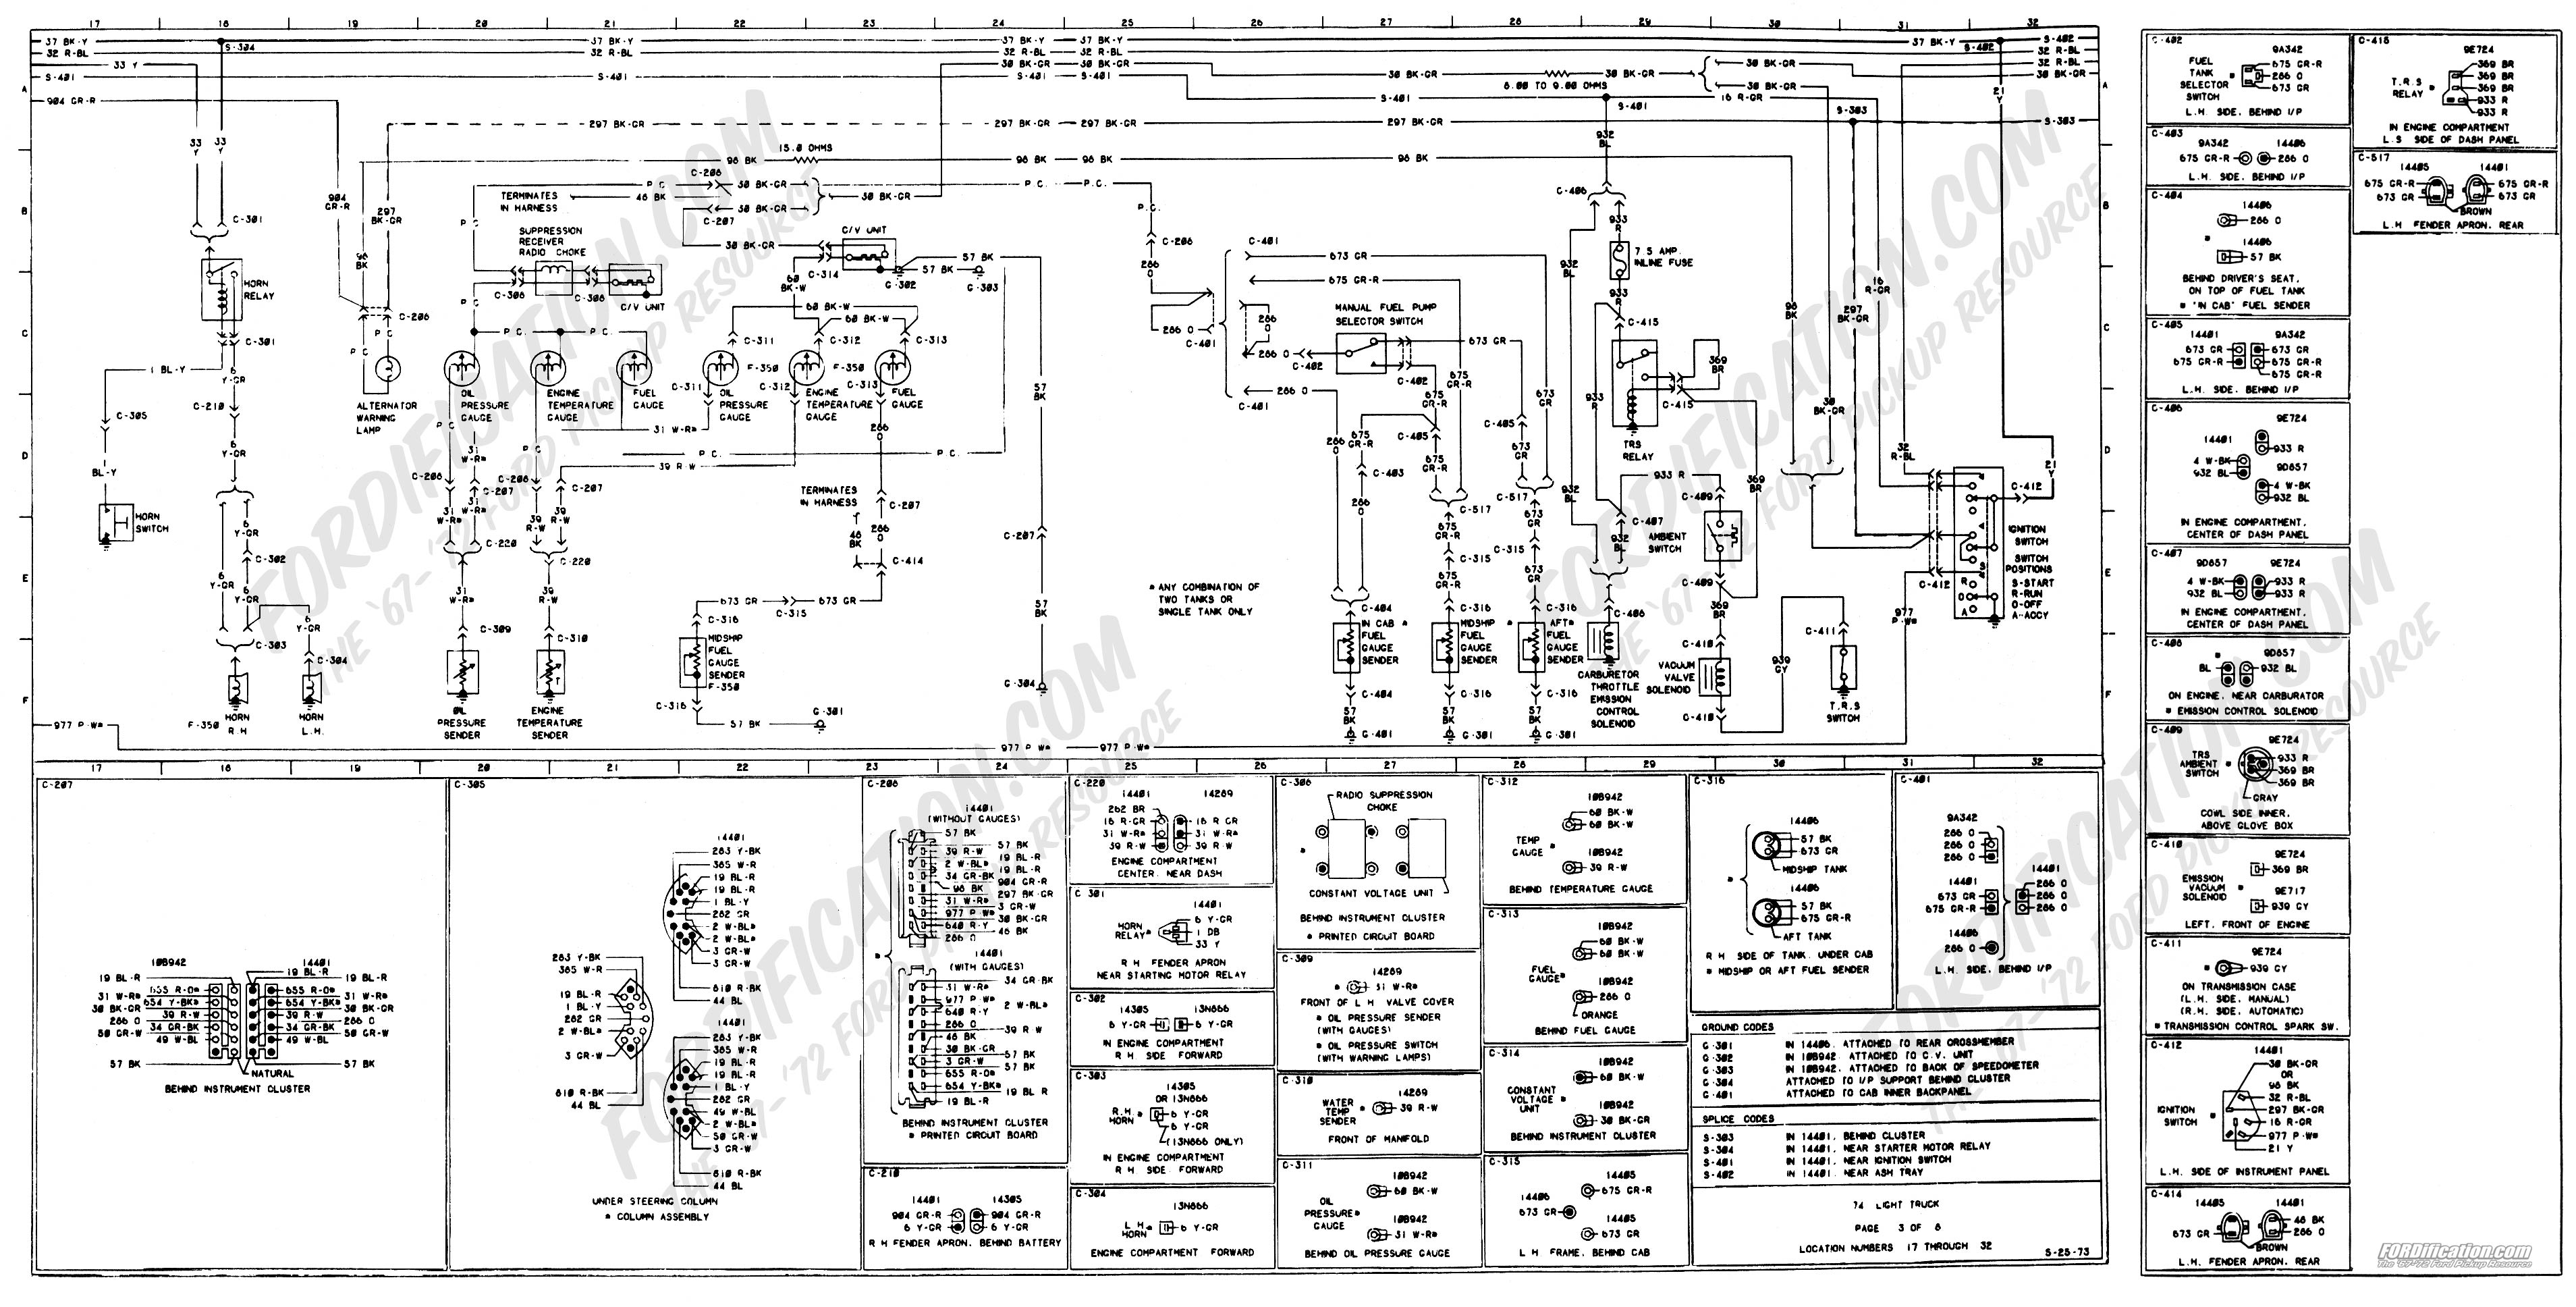 wiring_74master_3of8 1973 1979 ford truck wiring diagrams & schematics fordification net 79 bronco fuse box diagram at webbmarketing.co